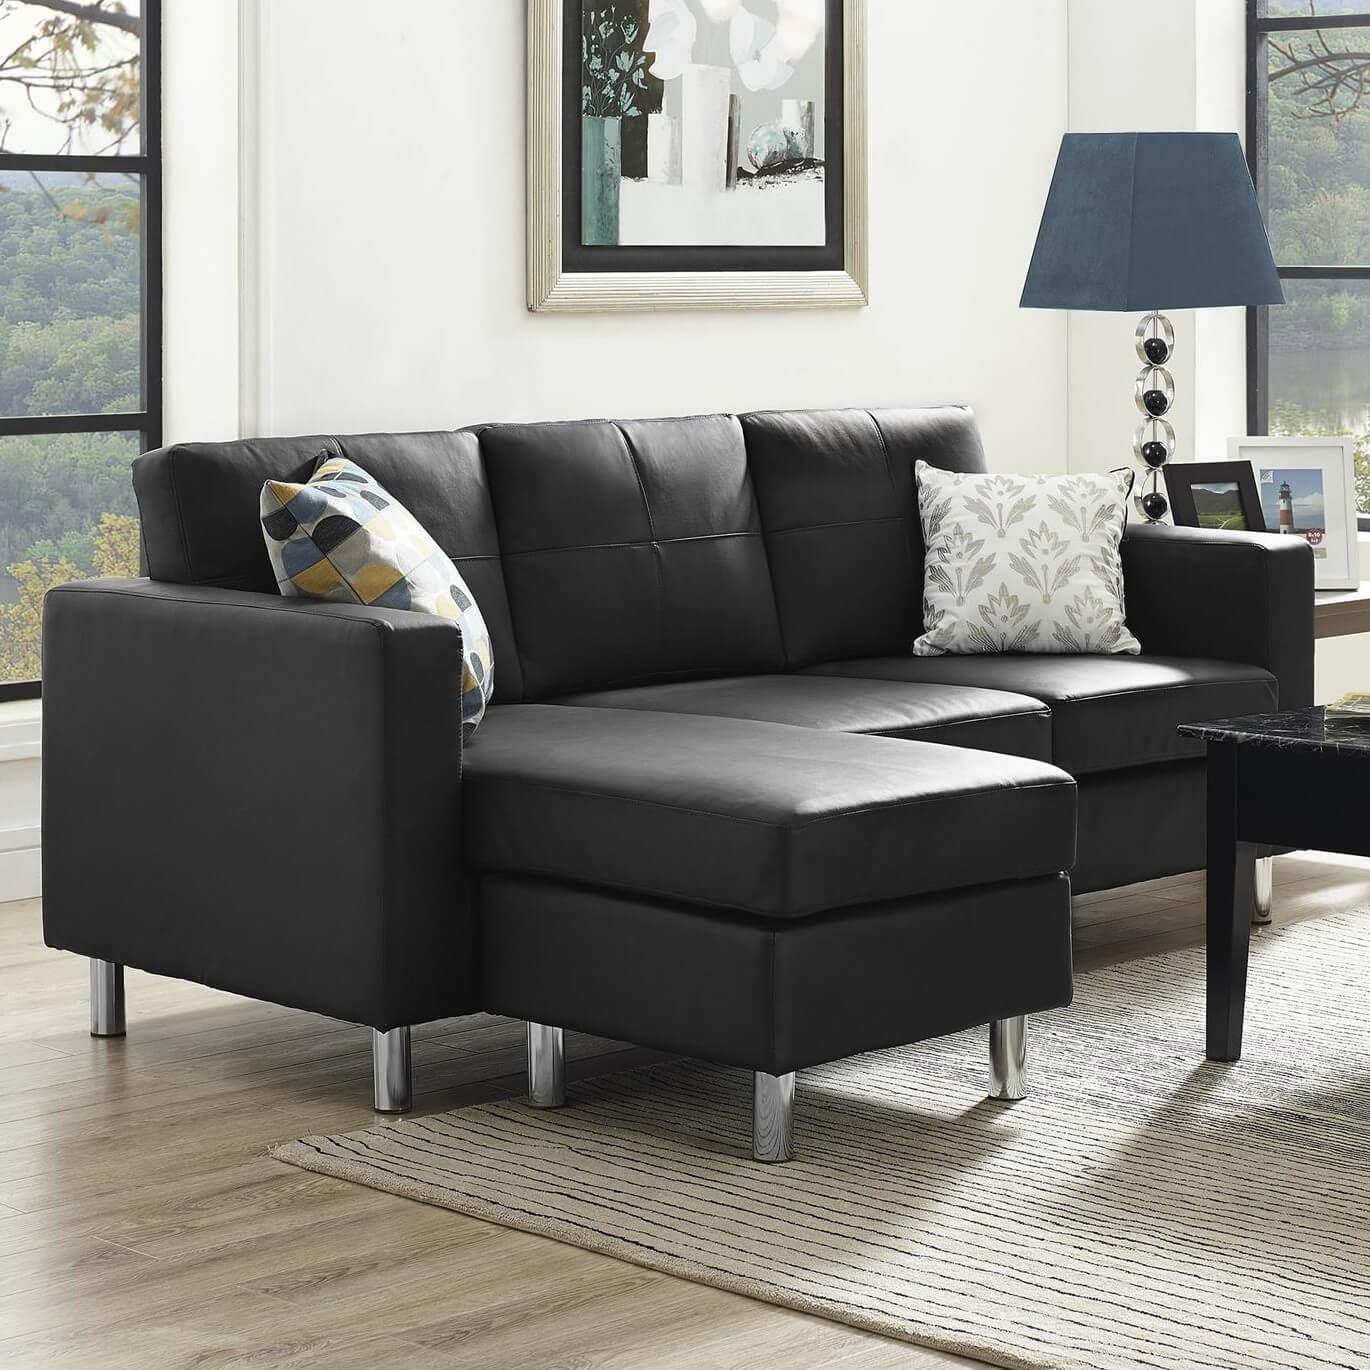 13 Sectional Sofas Under $500 (Several Styles) For Leather And Suede Sectional (Image 1 of 20)